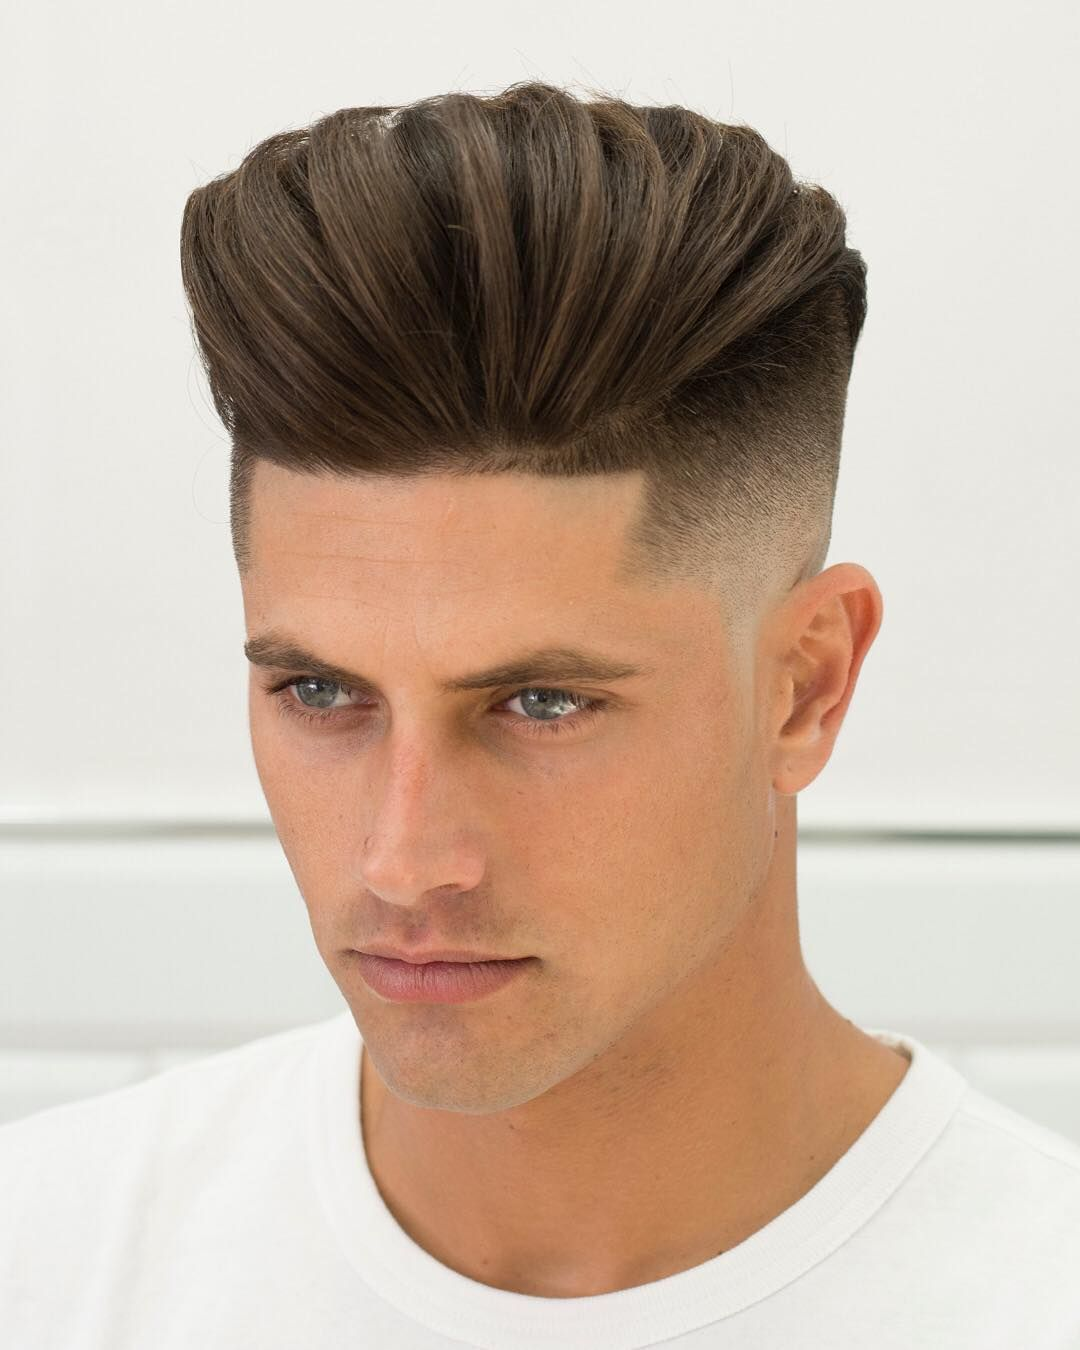 Top 45 Fade Haircuts For Men 2020 Styles With Images Fade